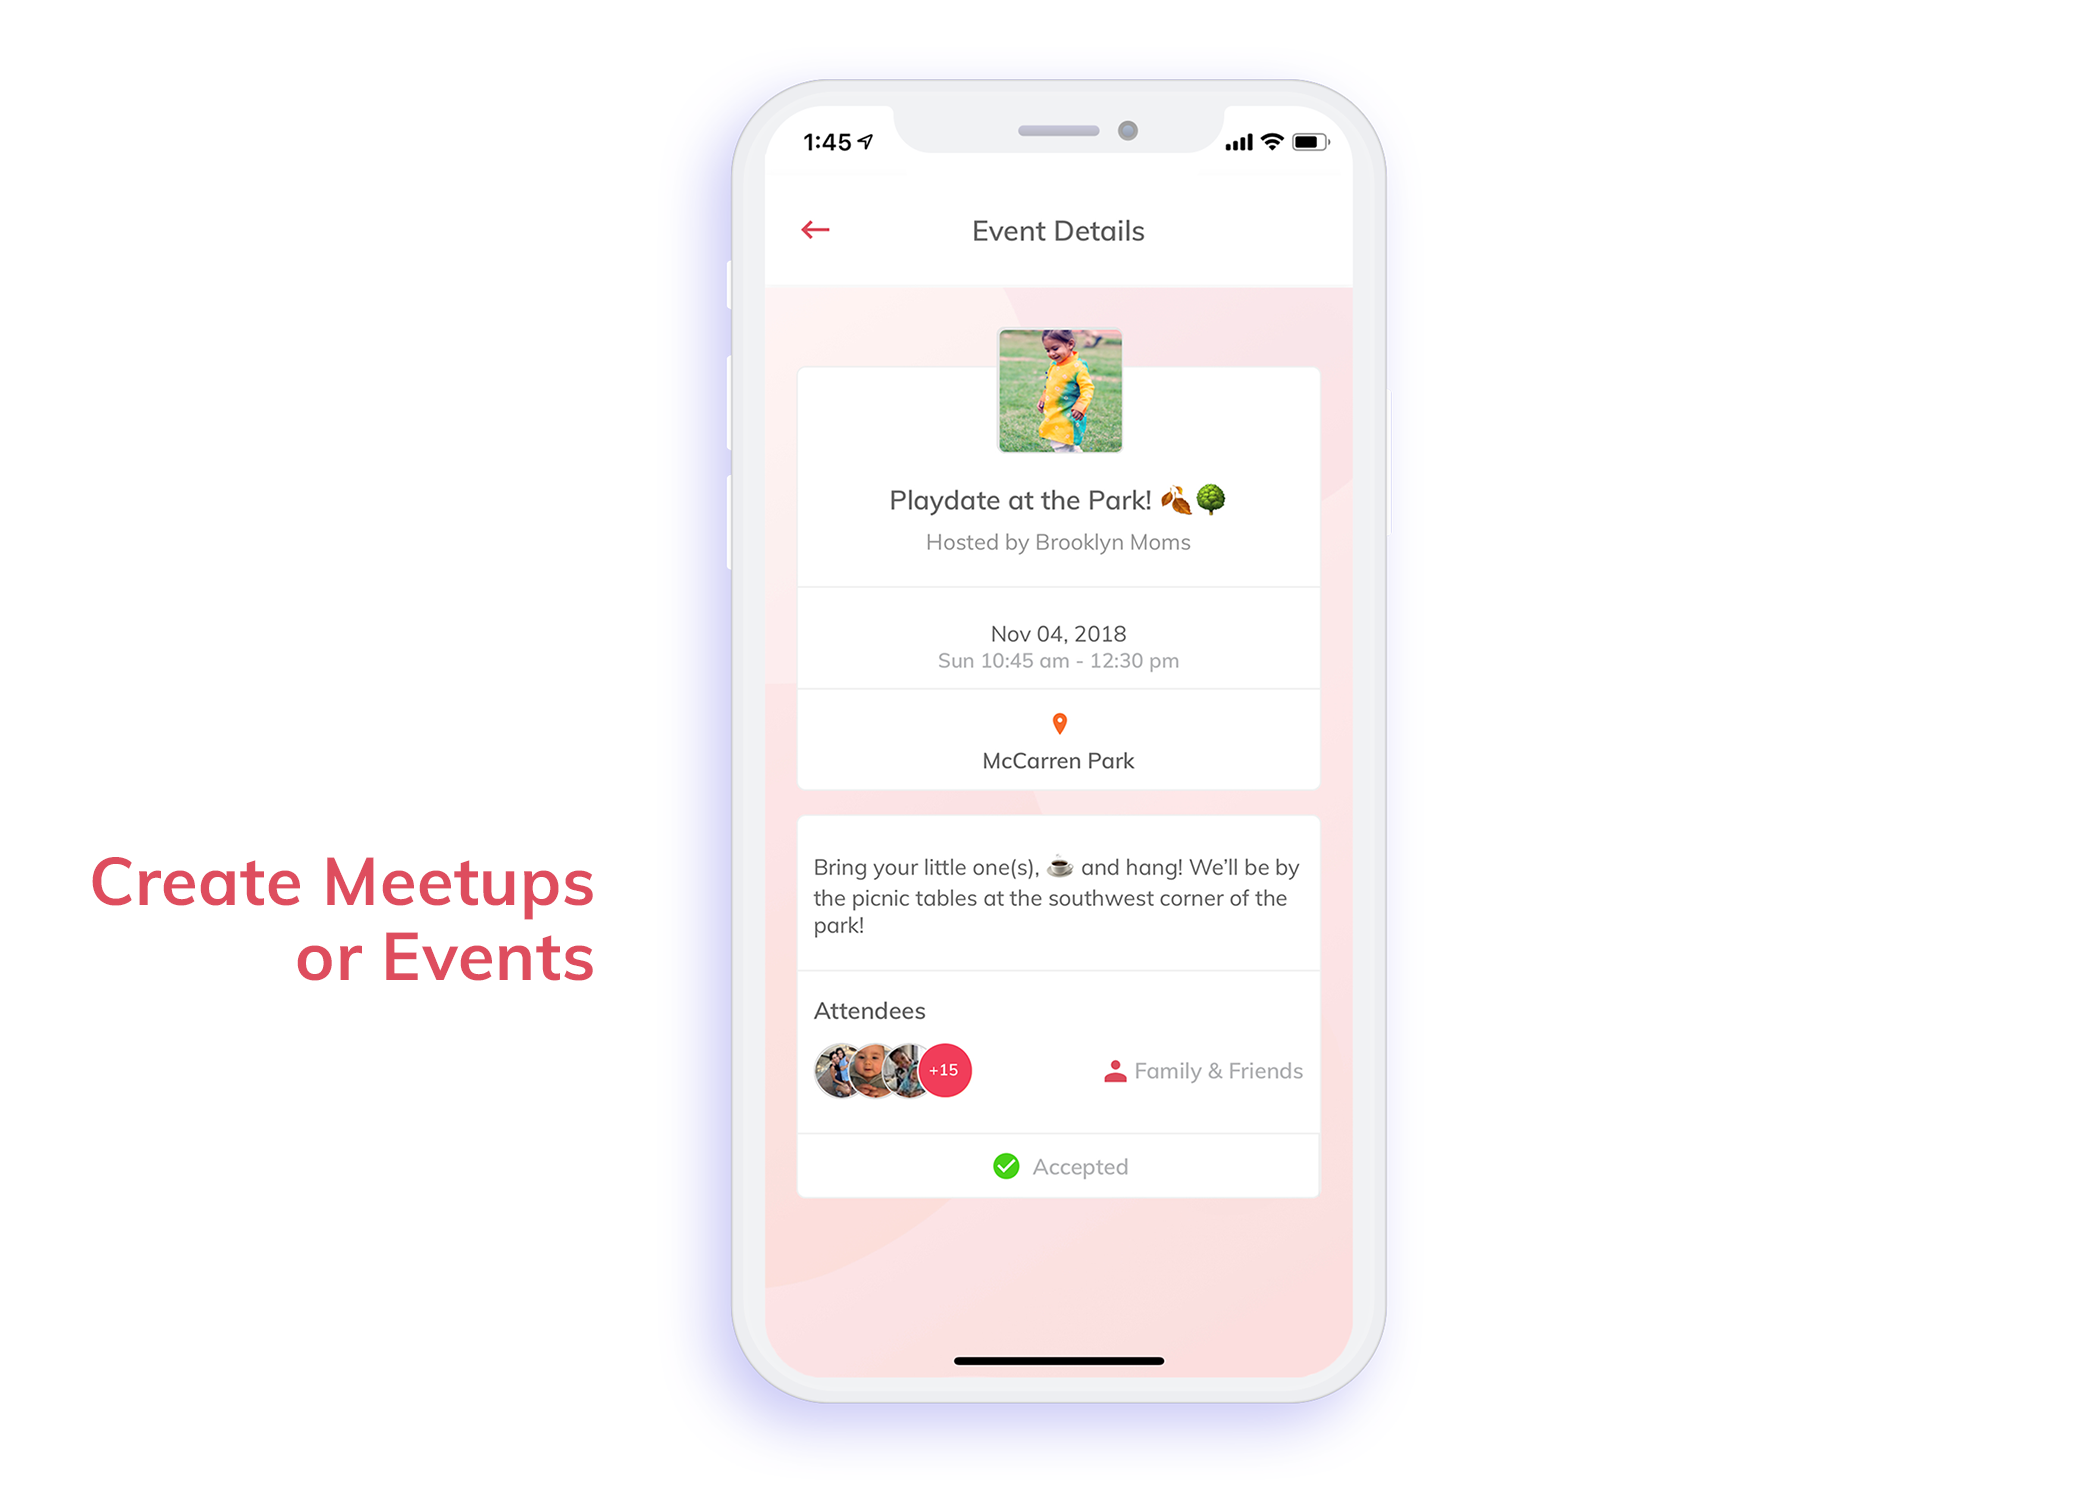 Create Meetings or Events